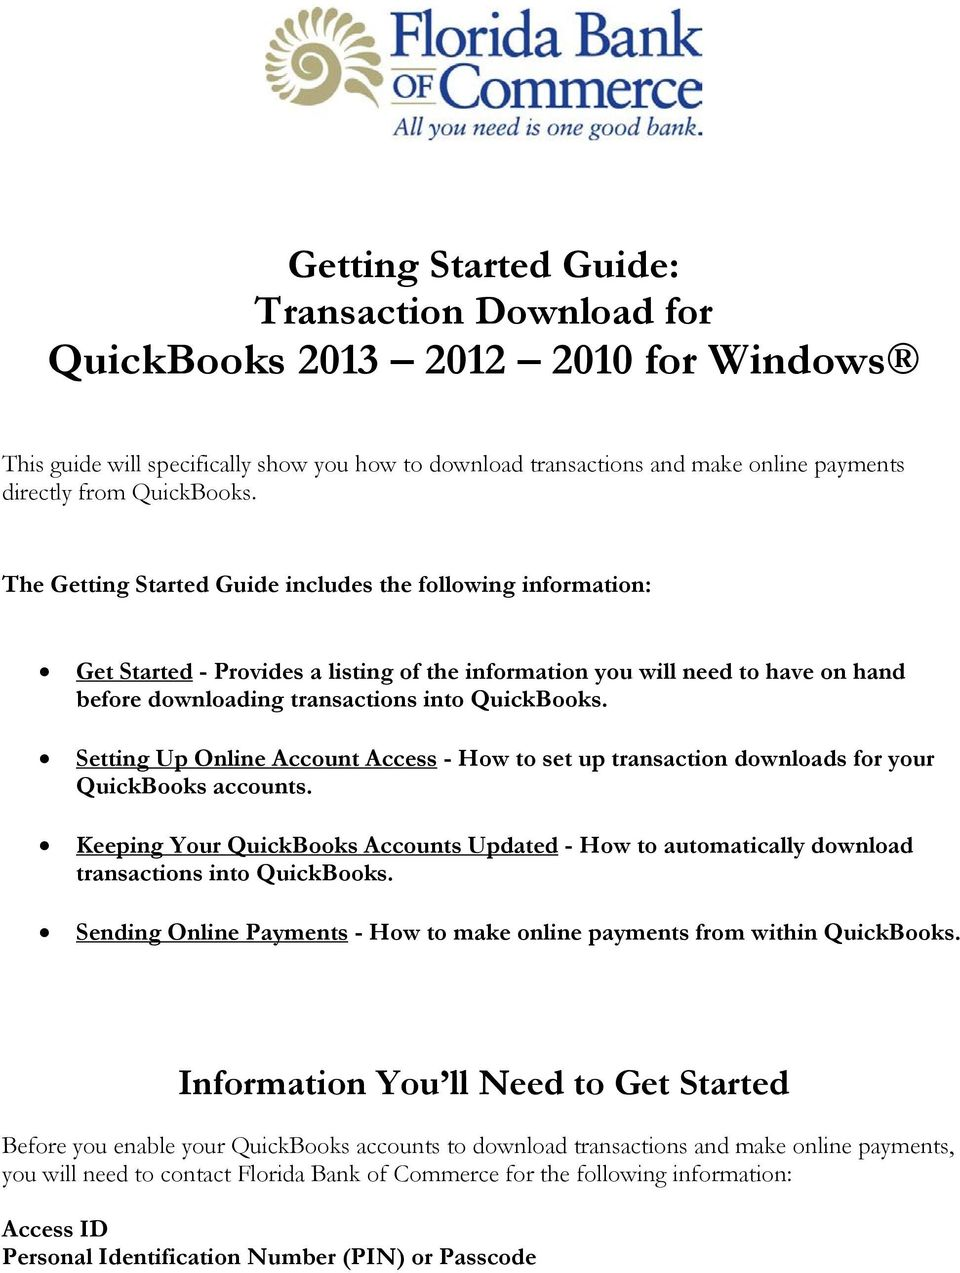 Getting Started Guide: Transaction Download for QuickBooks 2009, 2010 Windows The Getting Started Guide includes the following information: Get Started - Provides a listing of the information you